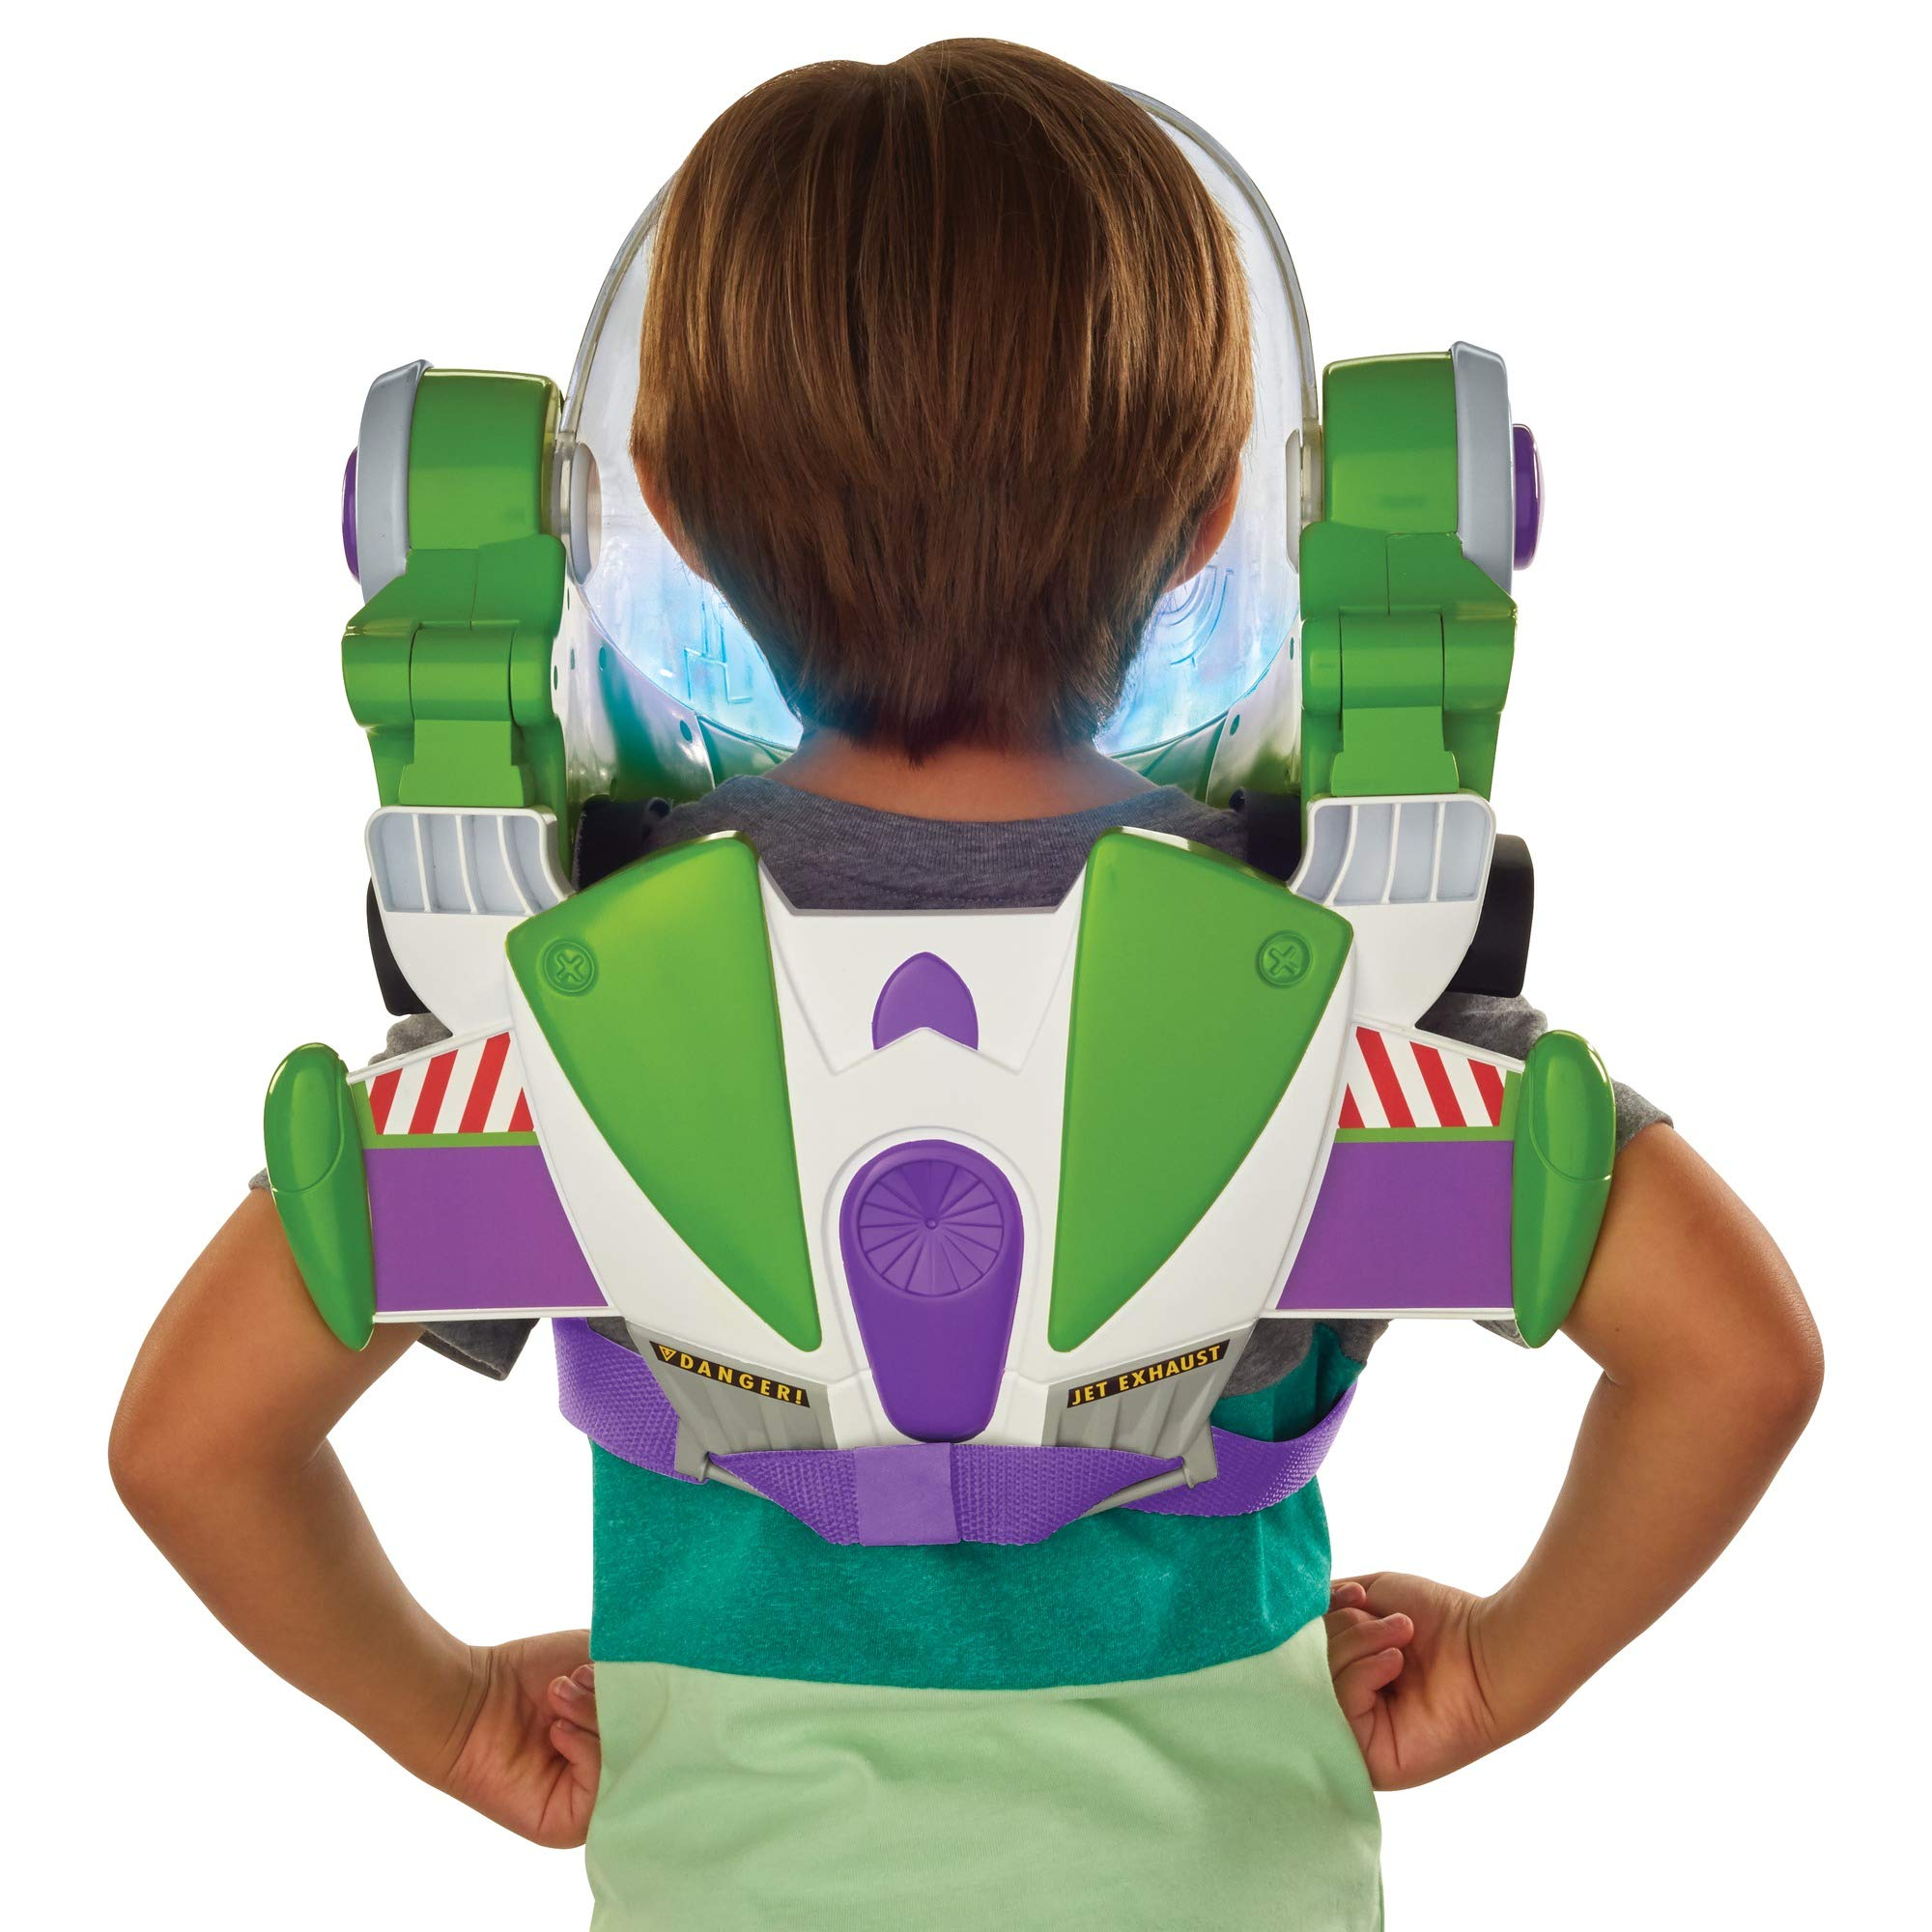 Toy Story Disney Pixar 4 Buzz Lightyear Space Ranger Armor with Jet Pack by Toy Story (Image #8)